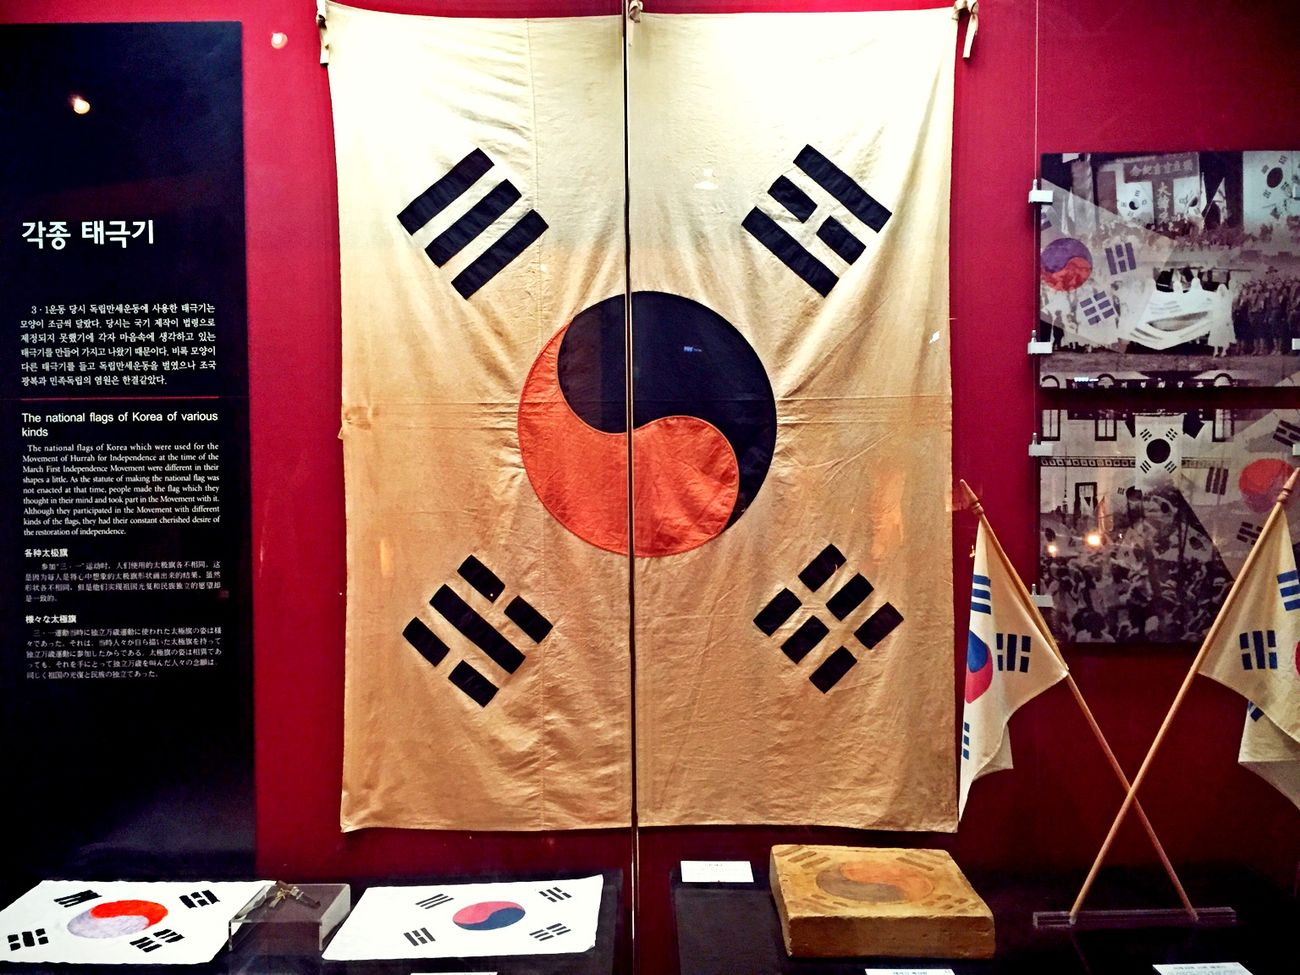 Korean Flag Flag Taegeukgi Independence